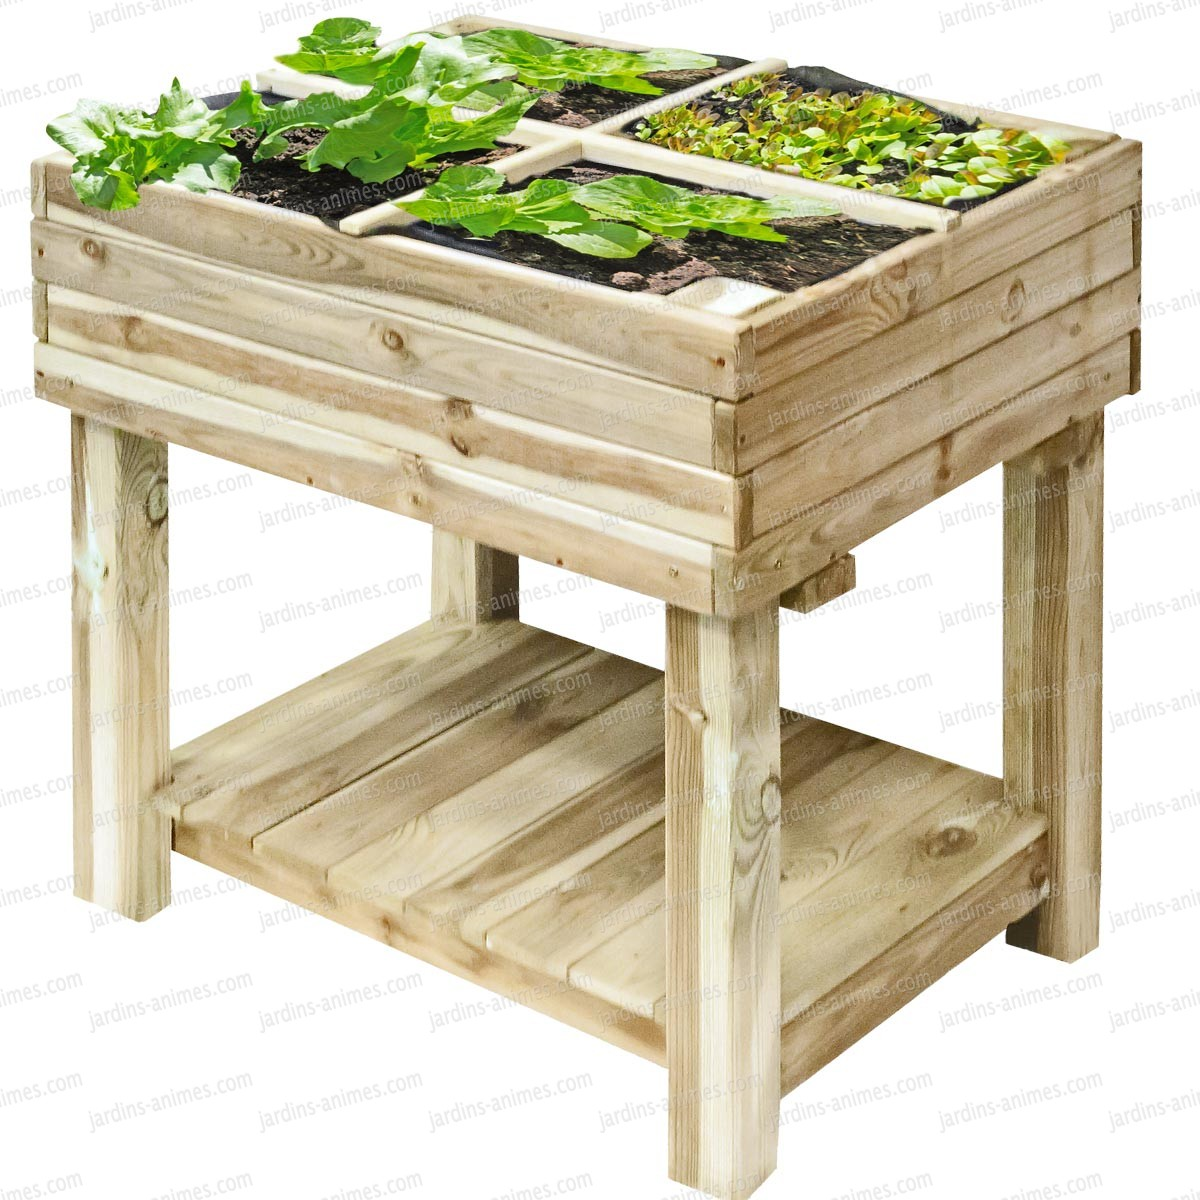 carr potager bois sur pied 80x60cm avec bache de. Black Bedroom Furniture Sets. Home Design Ideas